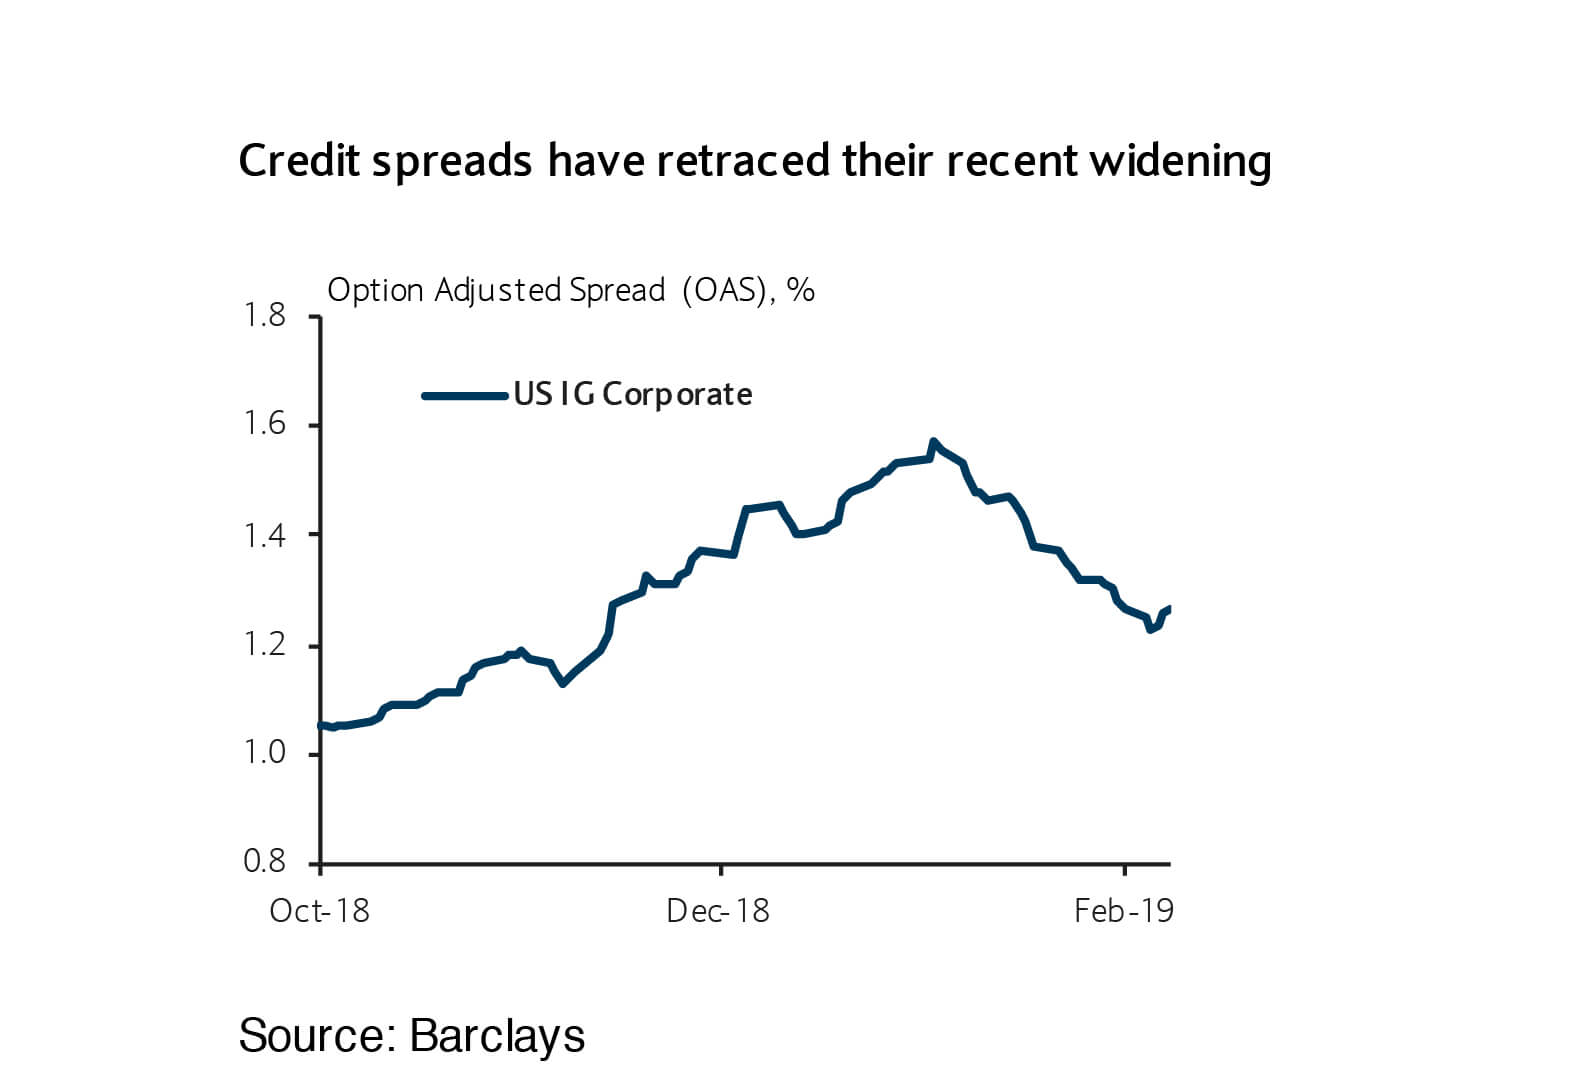 Credit spreads have retraced